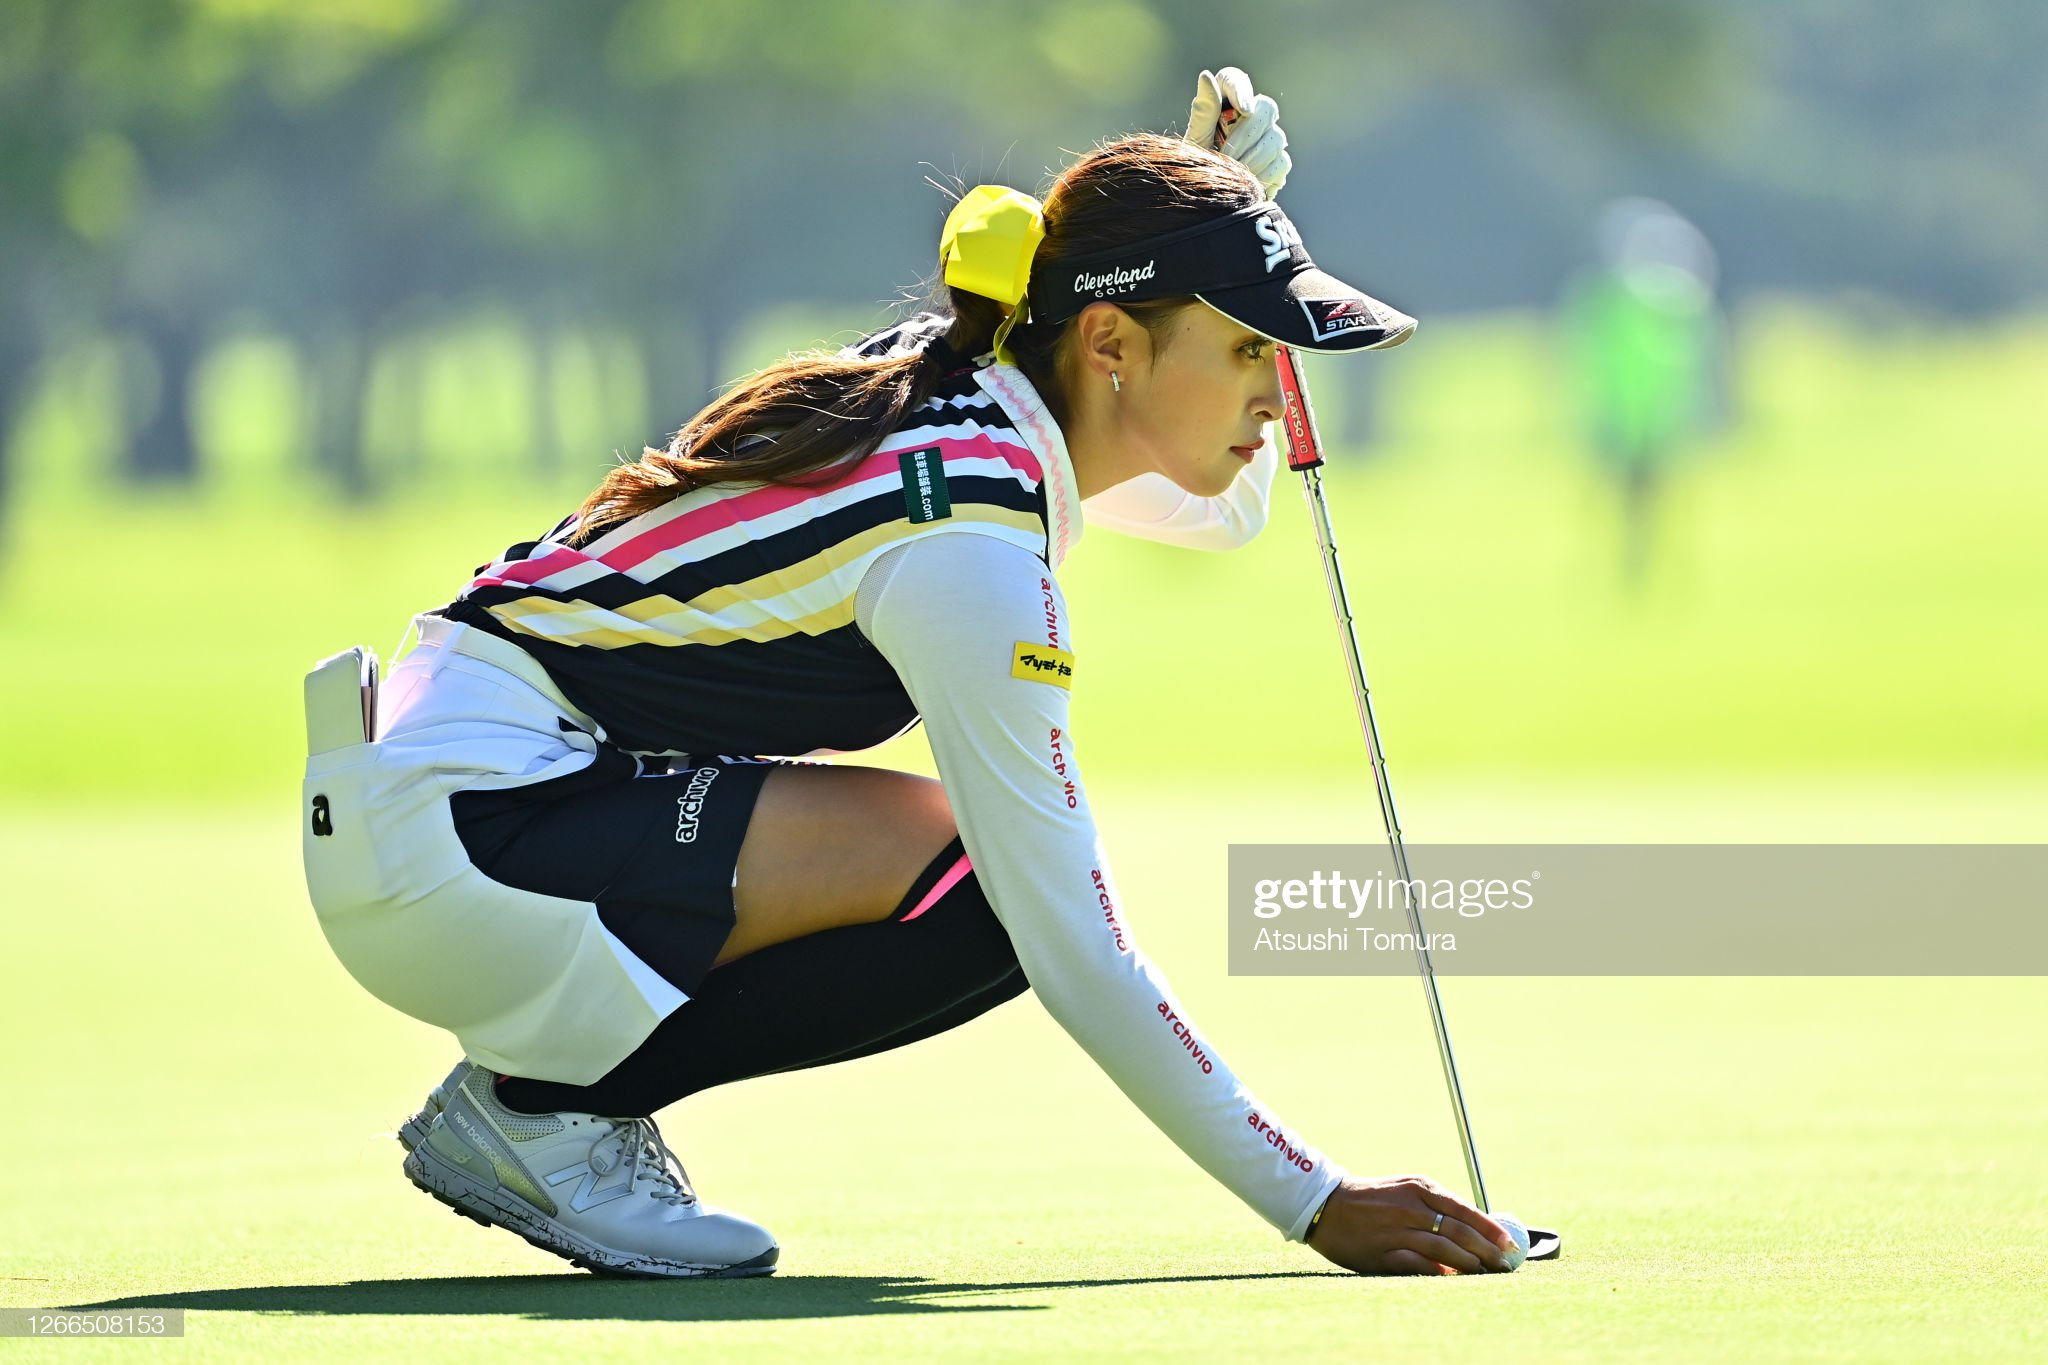 https://media.gettyimages.com/photos/reika-usui-of-japan-lines-up-a-putt-on-the-3rd-green-during-the-final-picture-id1266508153?s=2048x2048